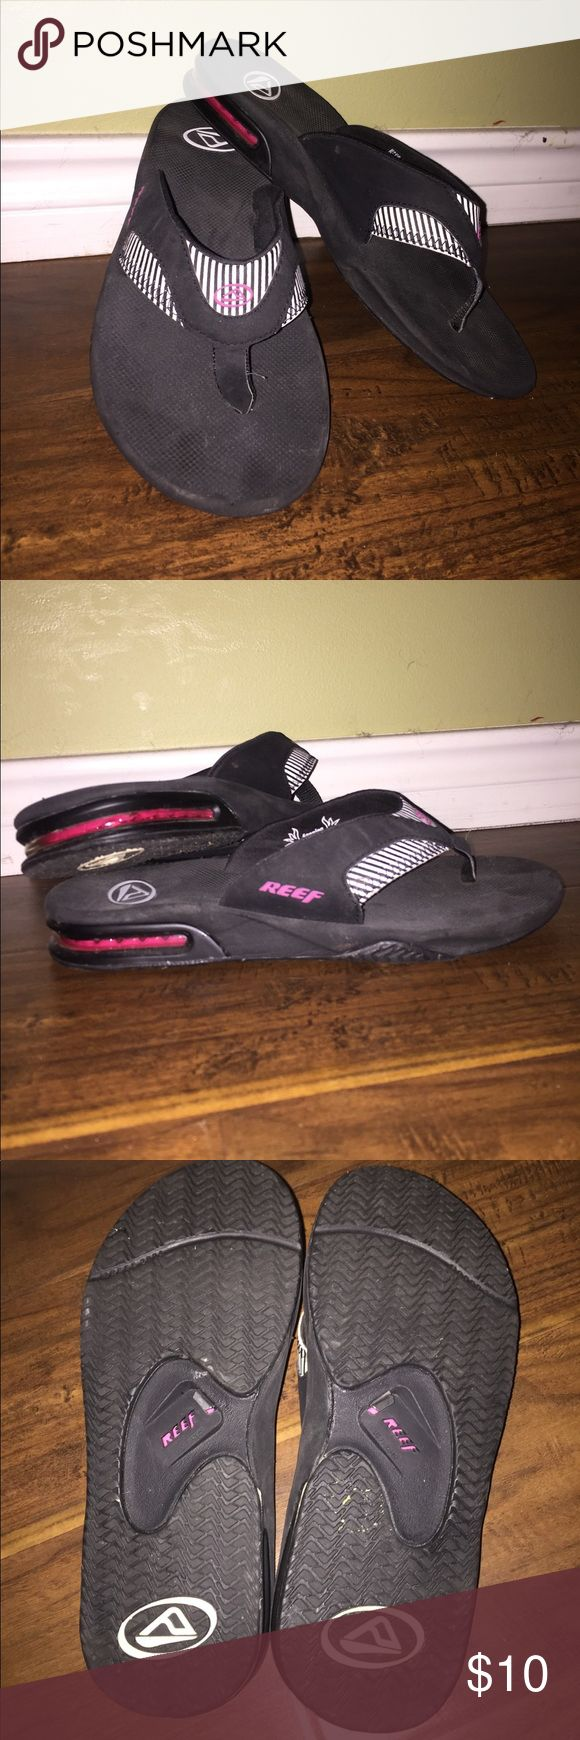 Reef Flip Flop Sandals Reef Flip Flop Ladies Sandals Black/White/Hot Pink Size 10 Great for Summer Water Trips They Even Have a Bottle Opener on the Bottom! How Cool is that! Reef Shoes Sandals